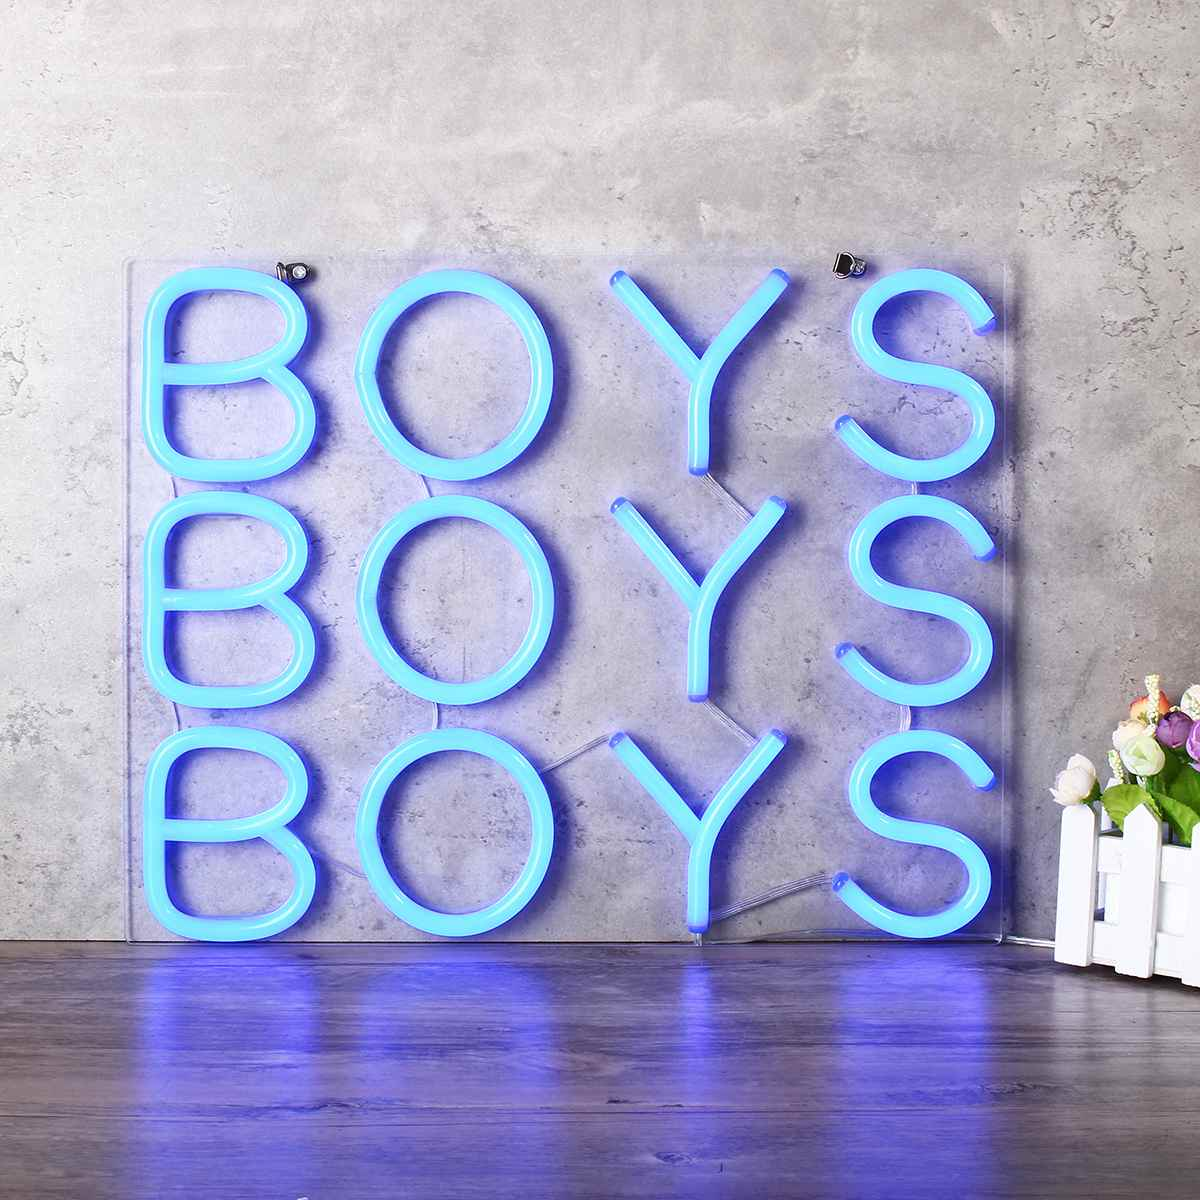 Blue BOYS Neon Sign LED Light Beer Bar Pub Party Decoration Home Room Wall Ornaments Gifts 25x25cm US Plug